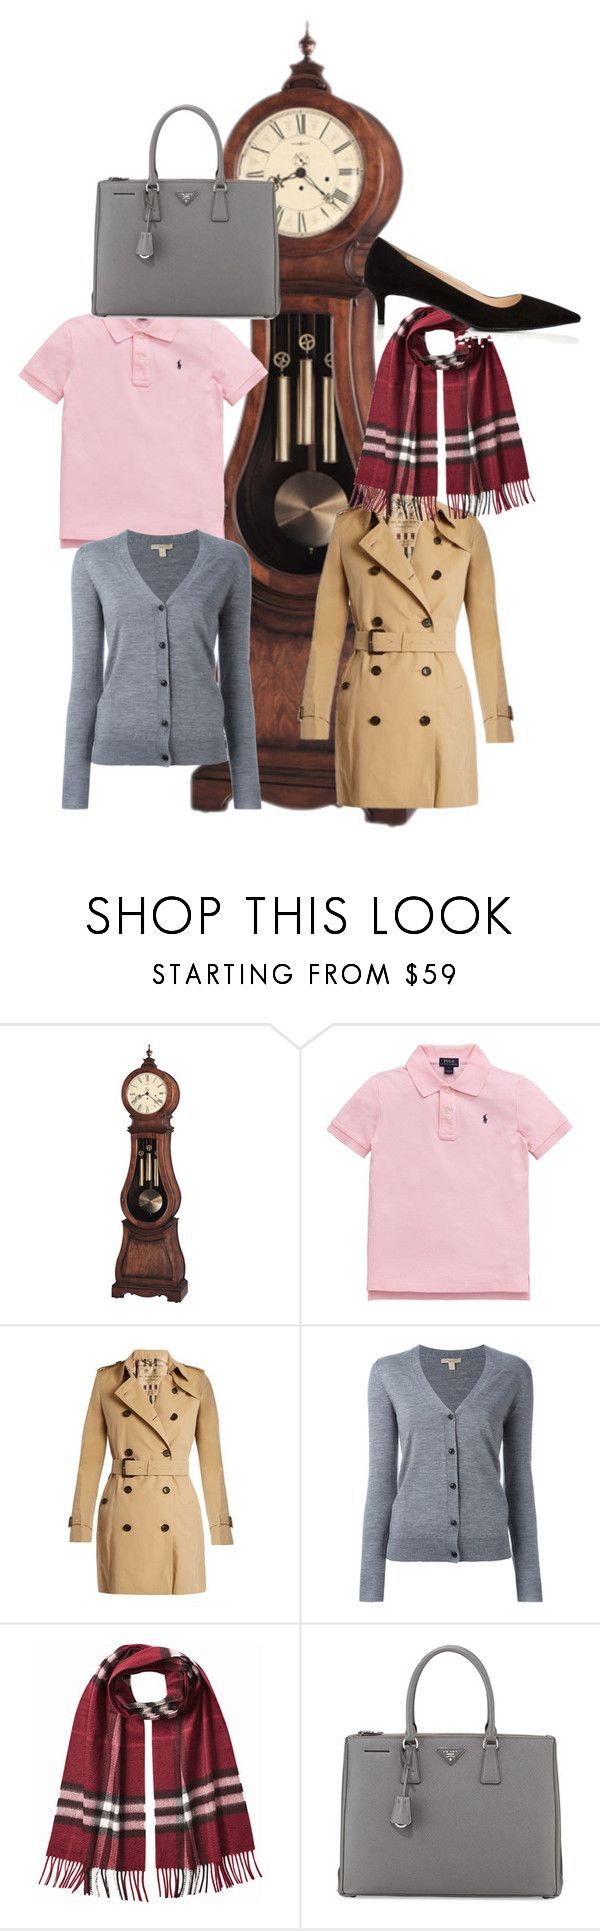 """""""Timeless"""" by mpmongillo on Polyvore featuring Howard Miller, Ralph Lauren, Burberry and Prada"""